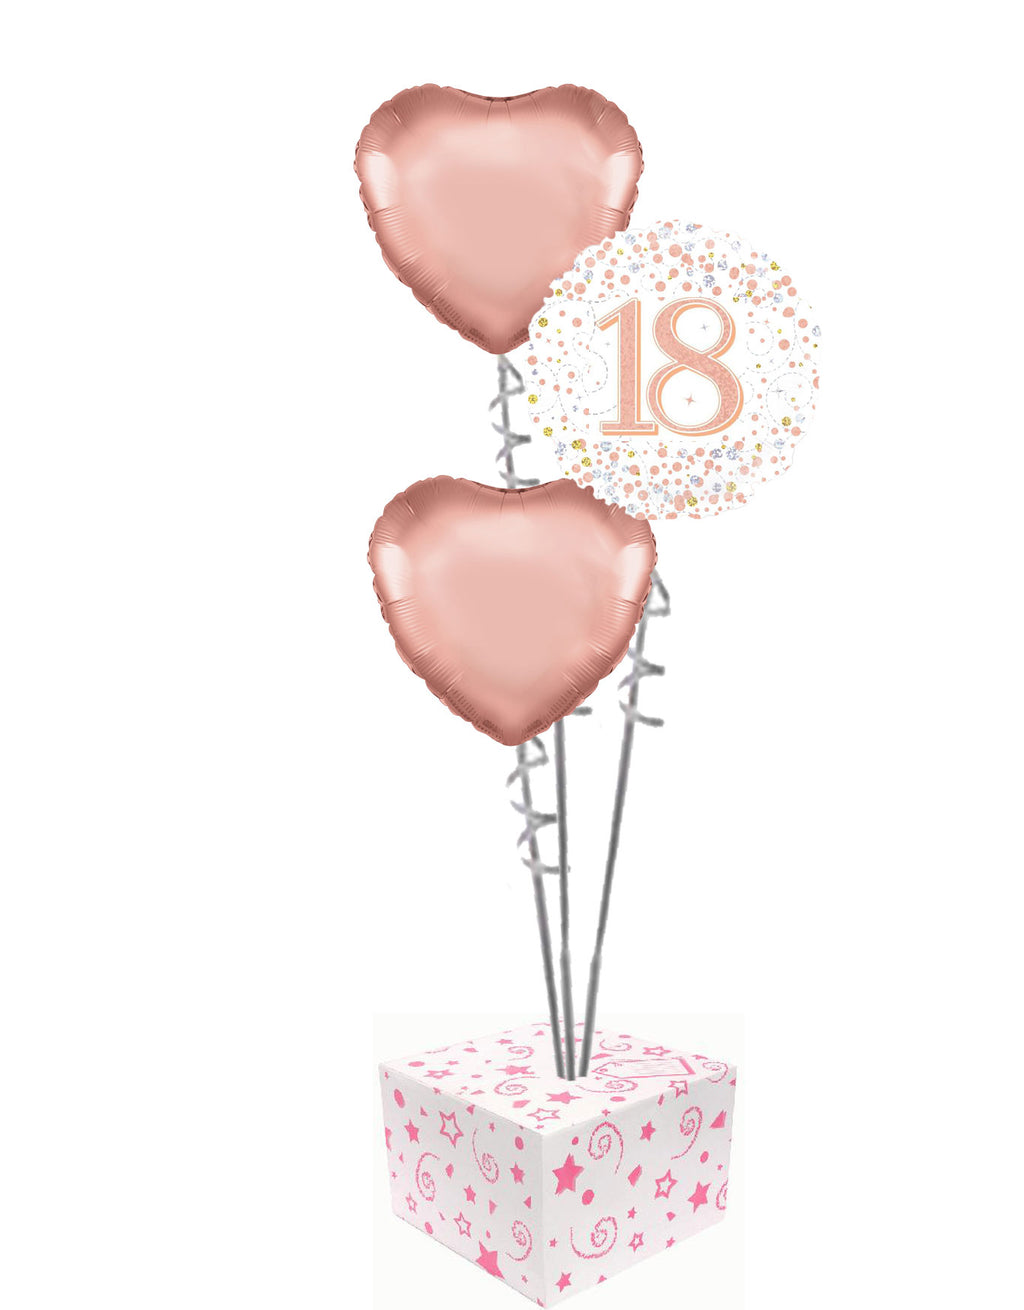 Rose Gold Foil Balloon Bouquet Helium Inflated and Delivered in a Box